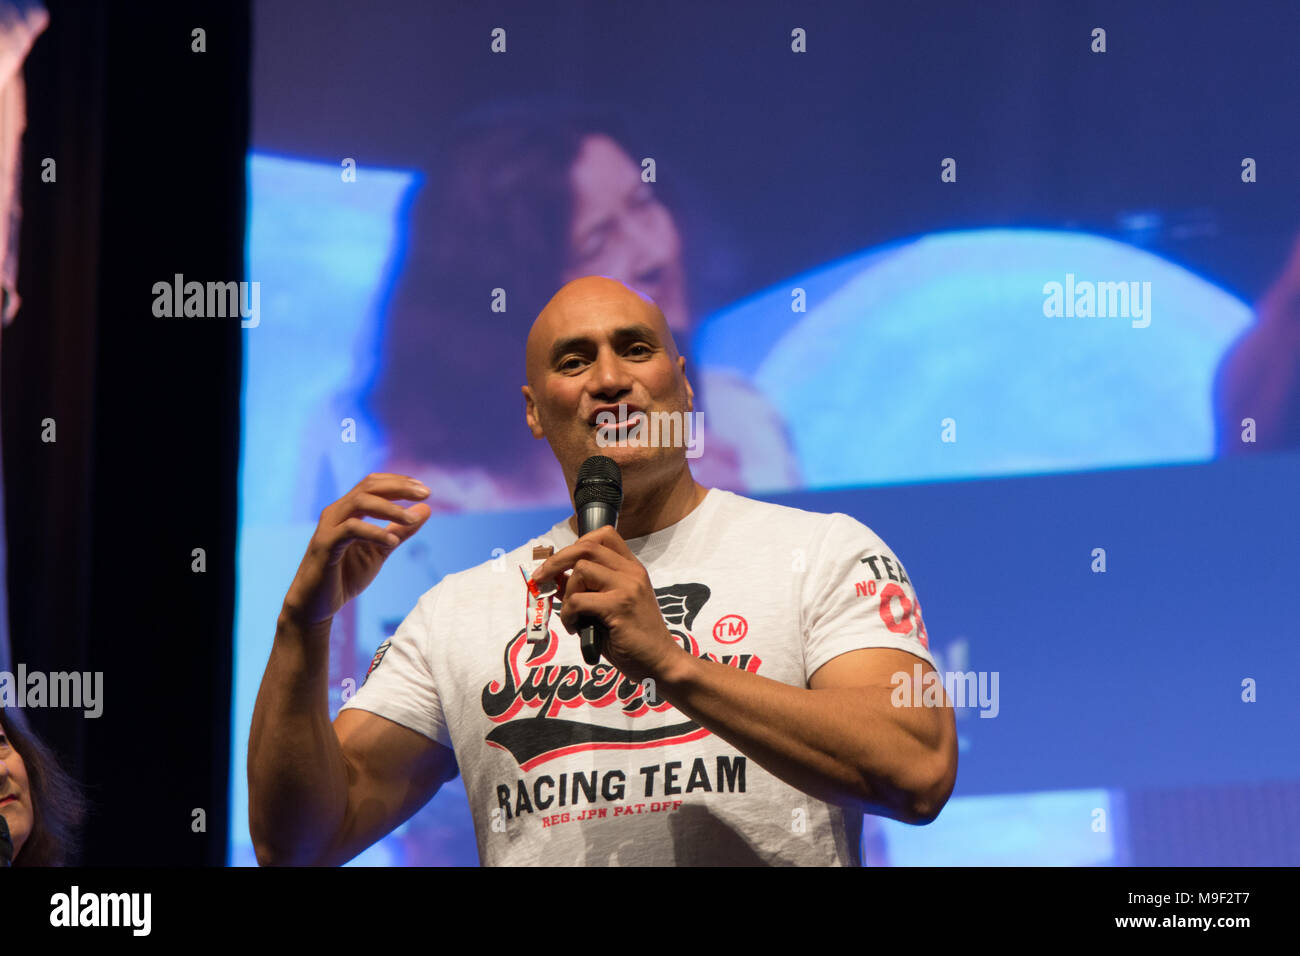 Bonn, Germany, 24 Mar 2018. Actor/Stuntman Shane Rangi (Narnia, Spartacus, Hobbit, Lord of the Rings), panel, at MagicCon, a three-day (March 23-25 2018) fantasy & mystery fan convention. Credit: Markus Wissmann/Alamy Live News - Stock Image